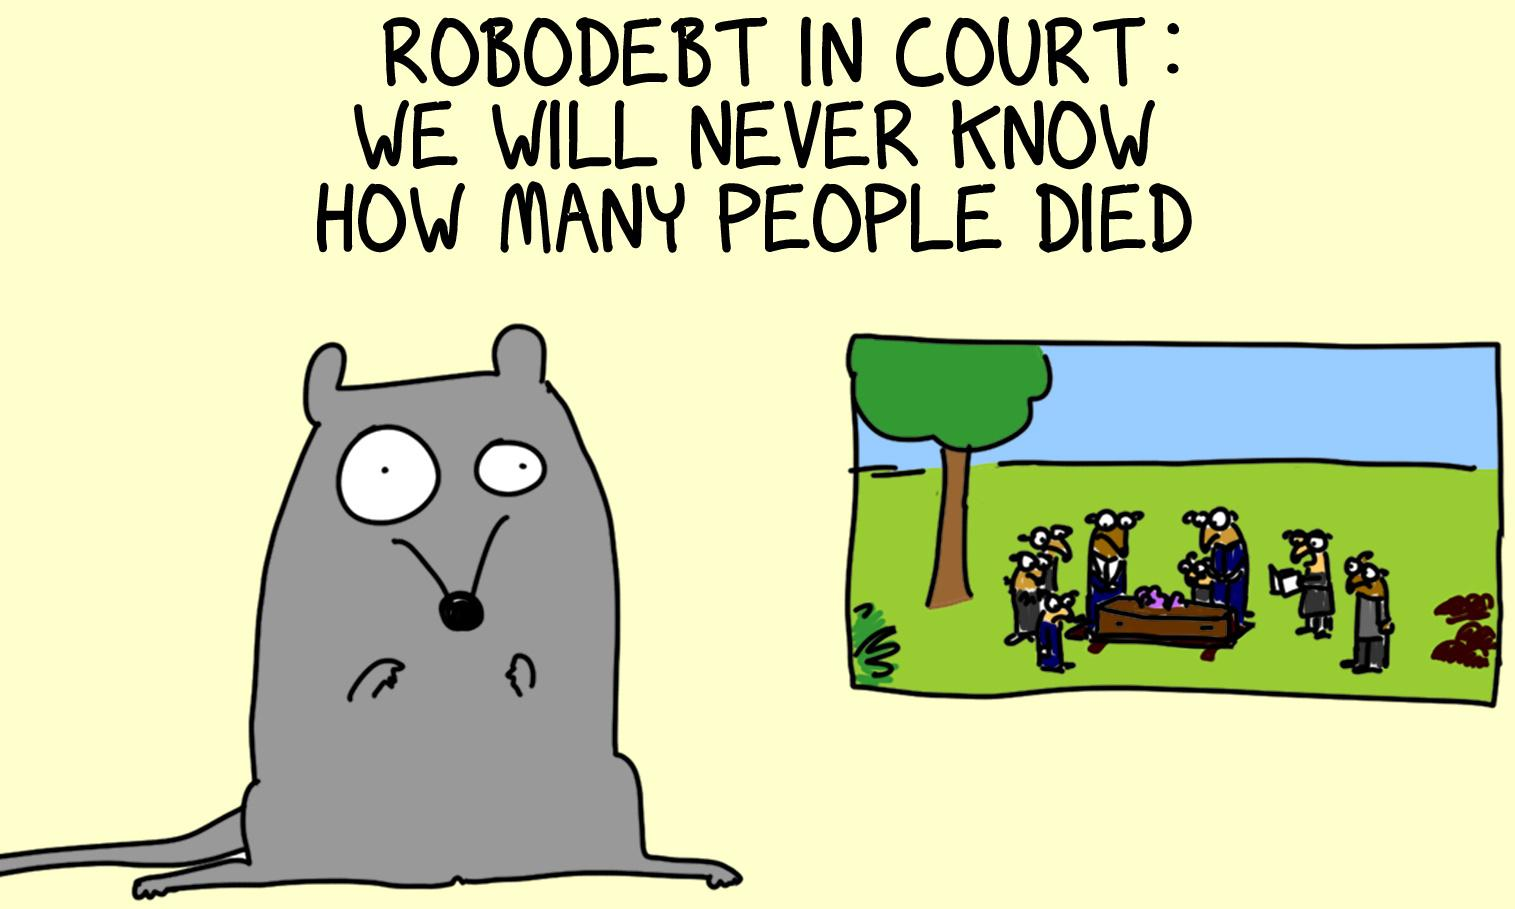 Robodebt's methods are not just deliberately cruel - they may be against the law